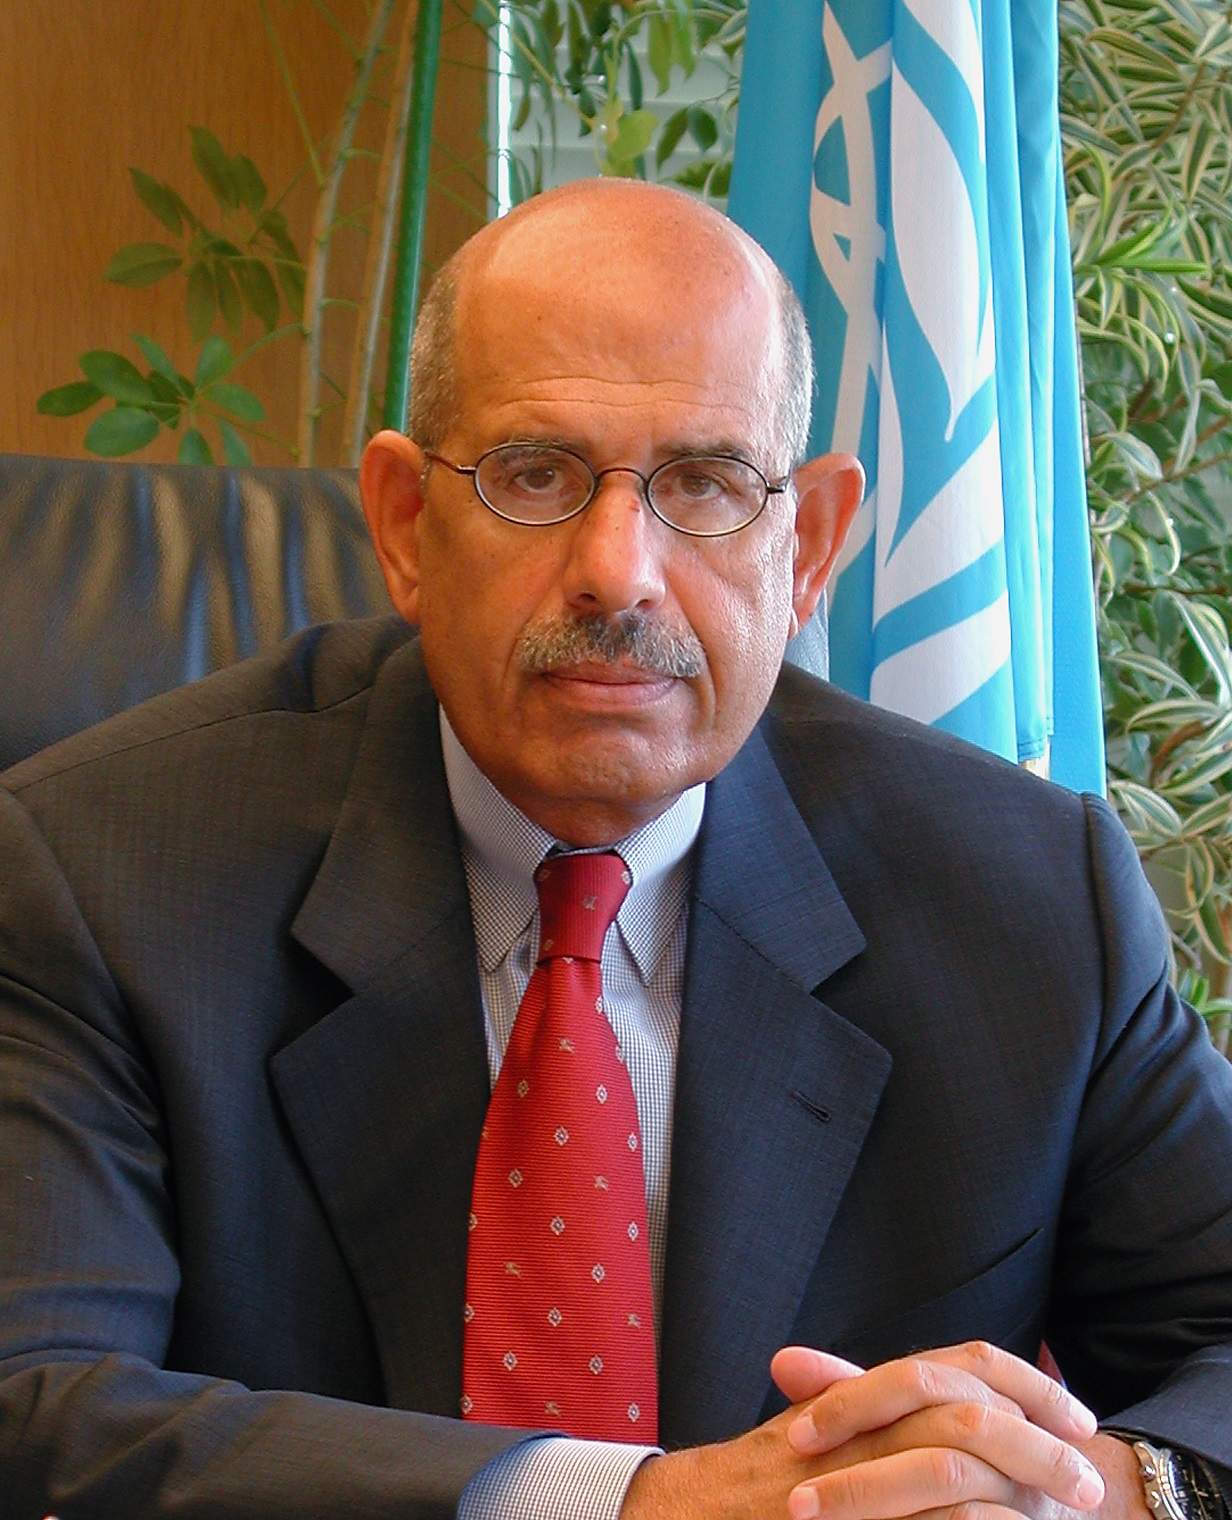 http://upload.wikimedia.org/wikipedia/commons/b/b9/Mohamed_ElBaradei.jpg